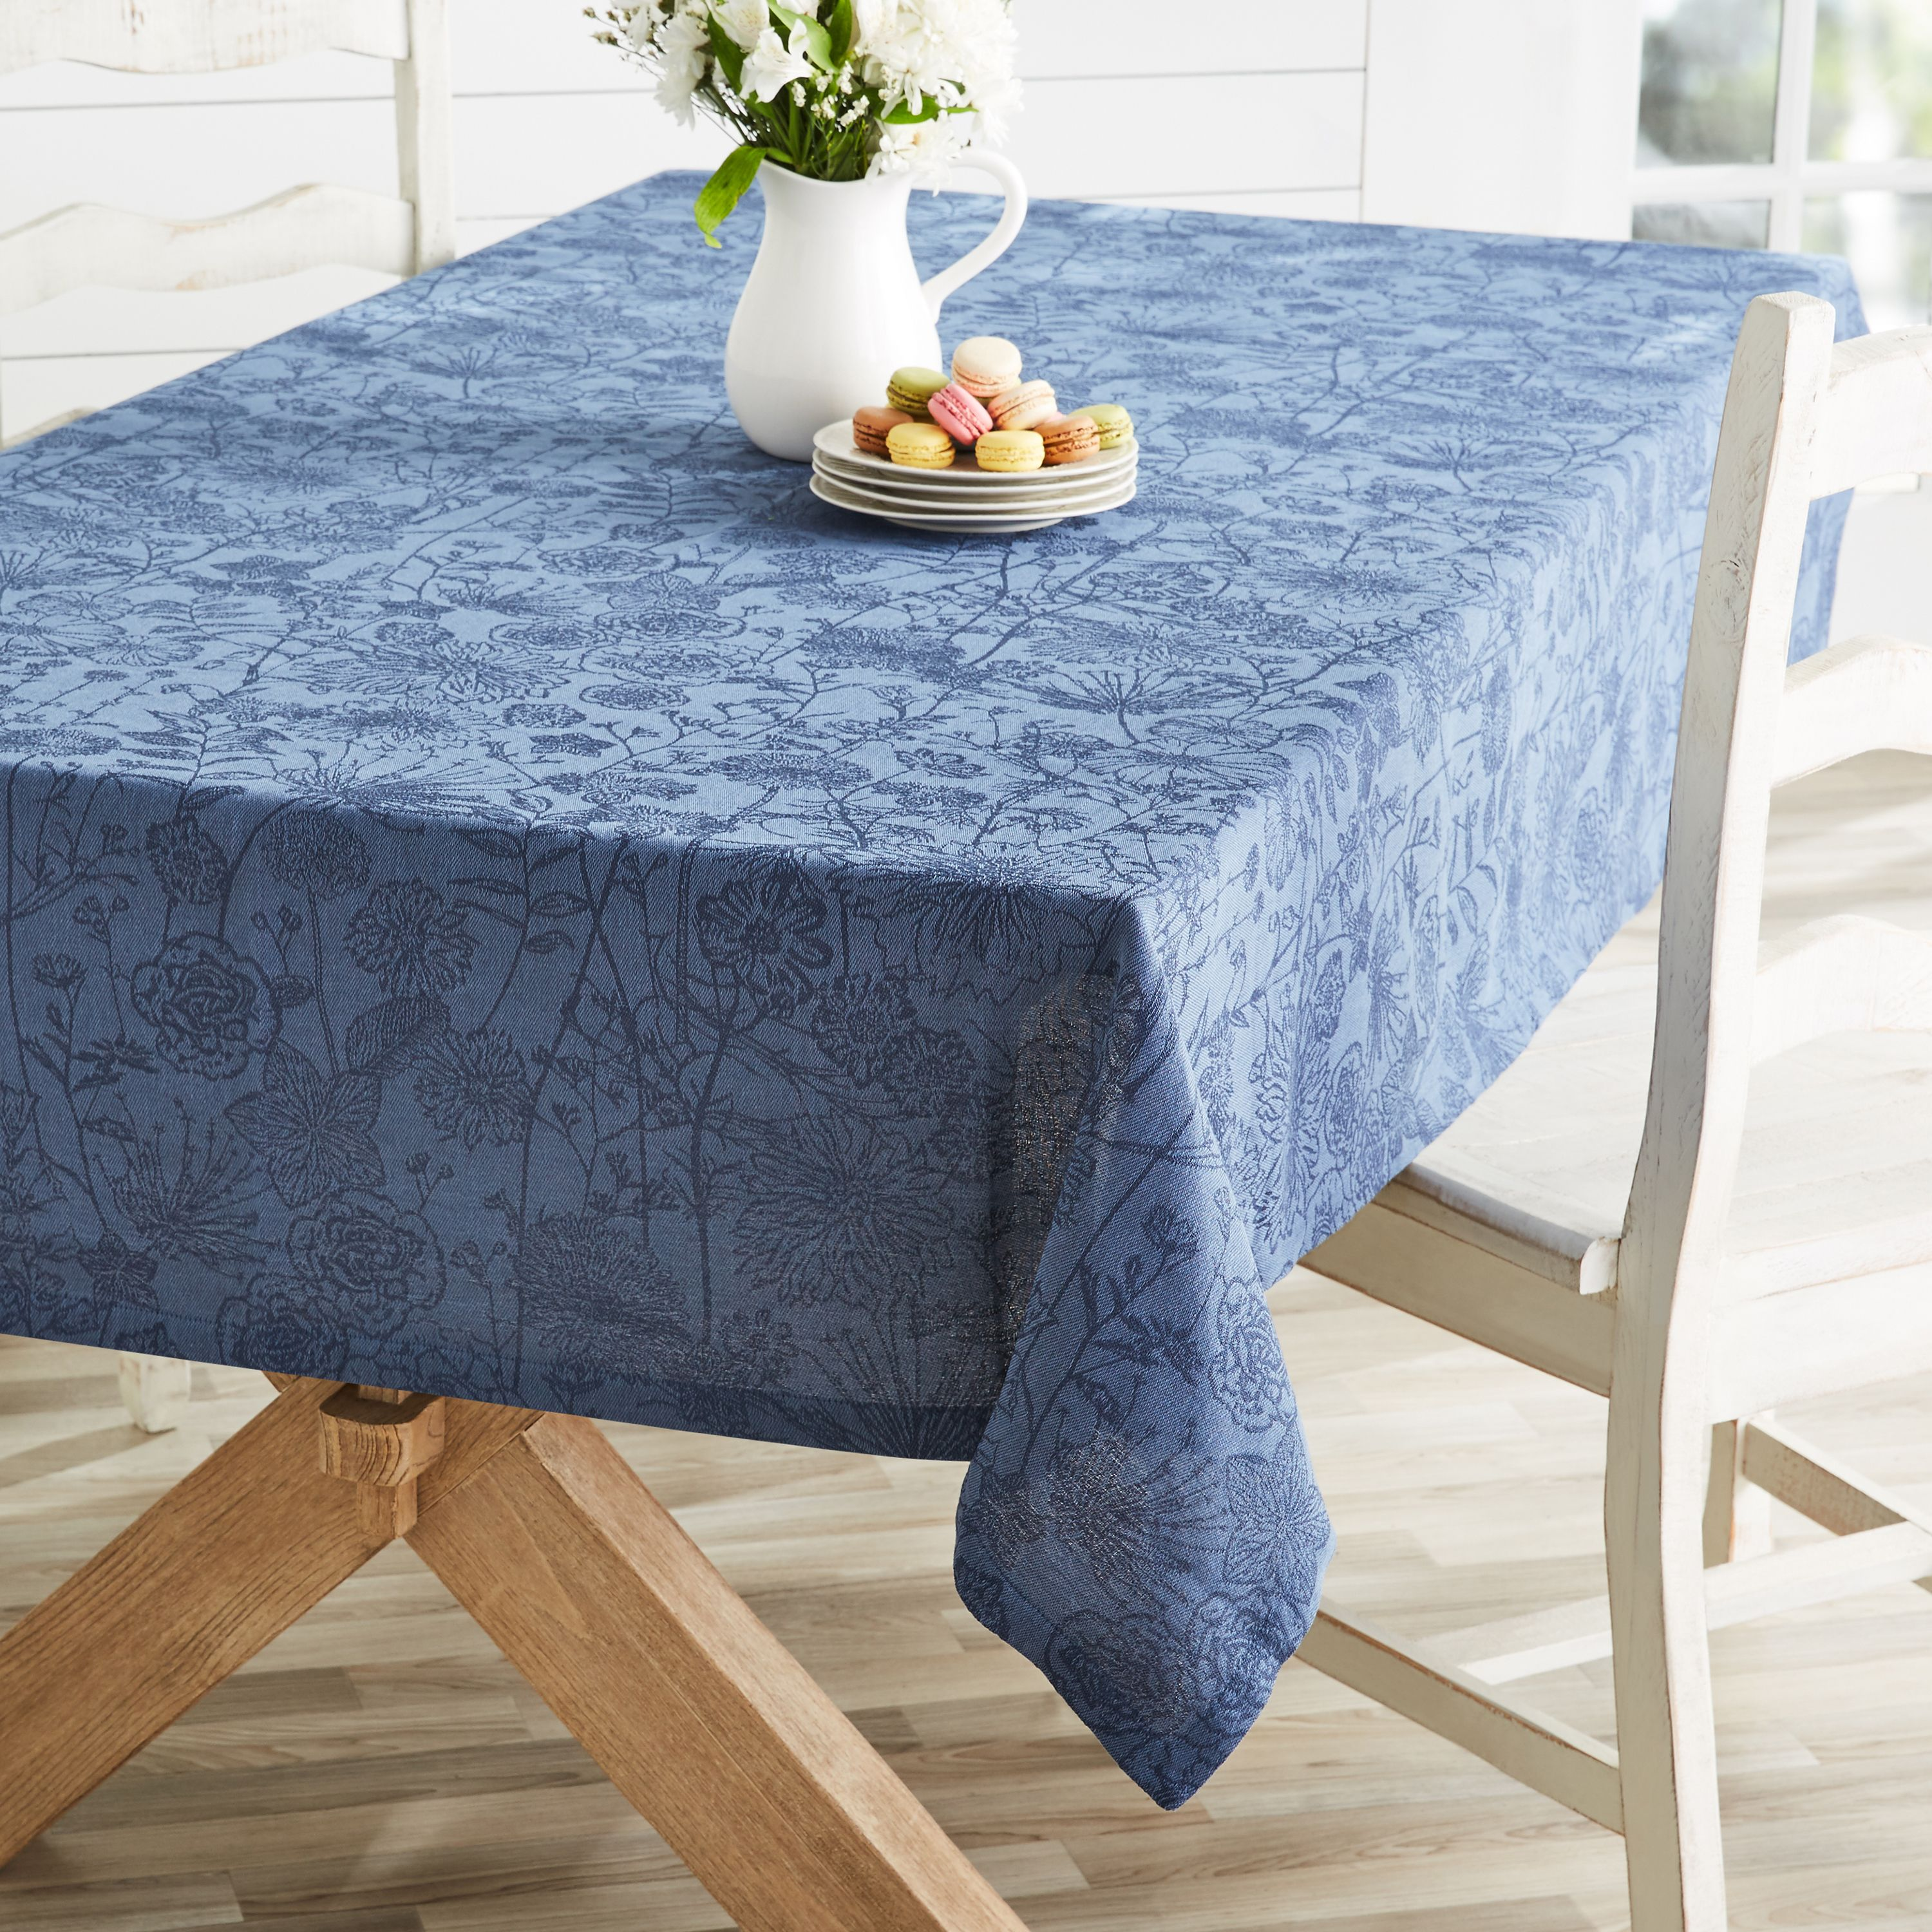 daebe7f2737d863630b33701816122ae - Better Homes And Gardens Holiday Edition Tablecloth